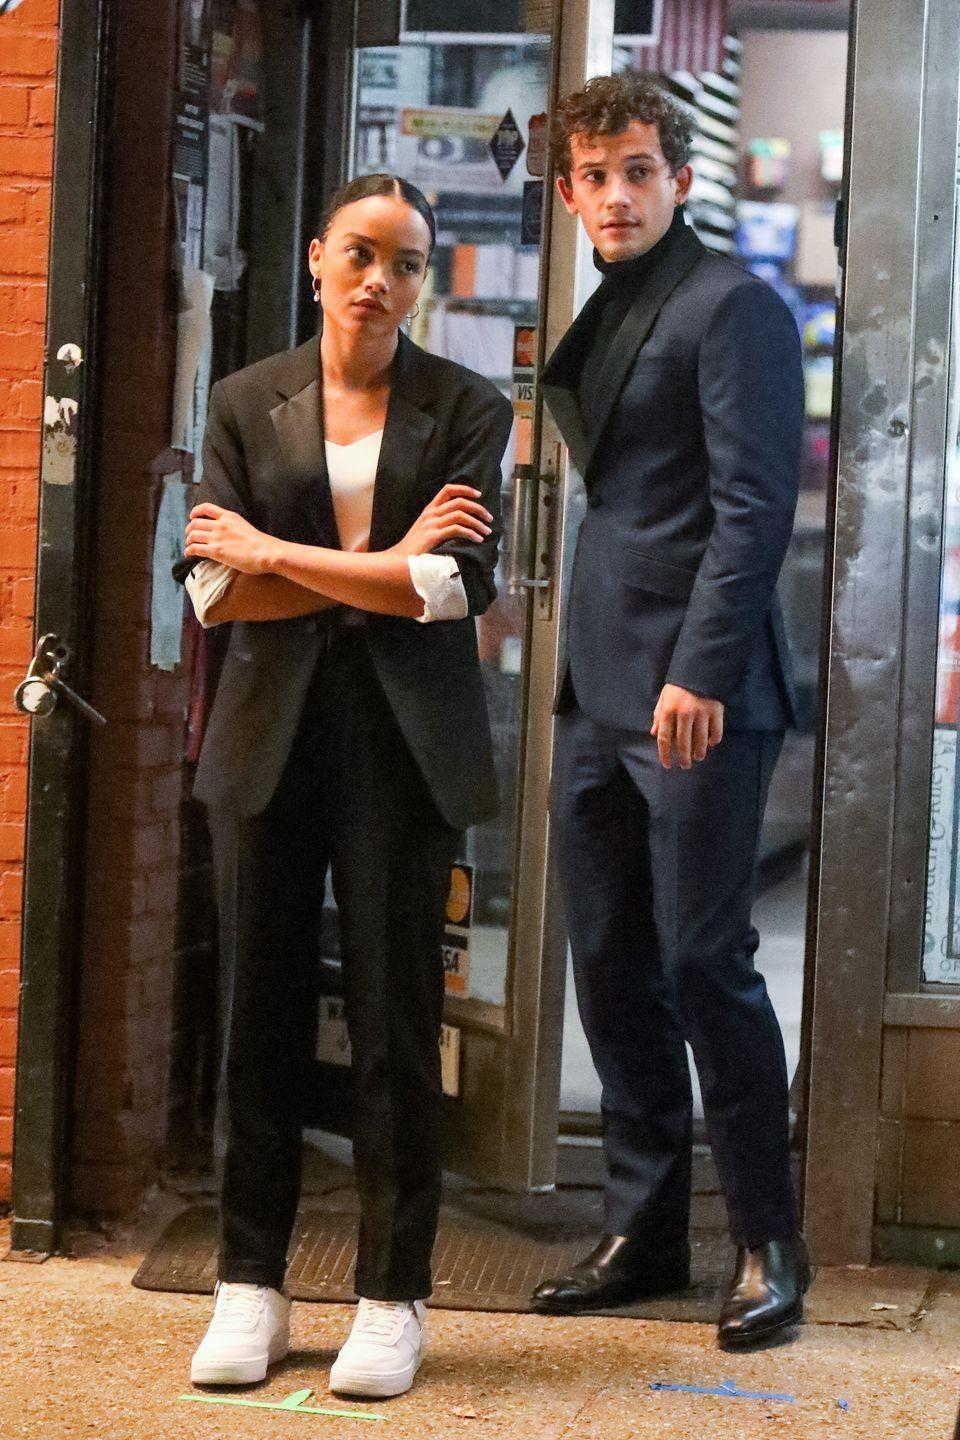 <p>Brown, pictured right, is also part of the leading trio. You might recognize him from the shows <em>Pretty Little Liars: The Perfectionists</em> and Netflix's <em>Spinning Out</em><em>,</em> or films like <em>The F**k-It List</em> and <em>Run Hide Fight</em>. </p>